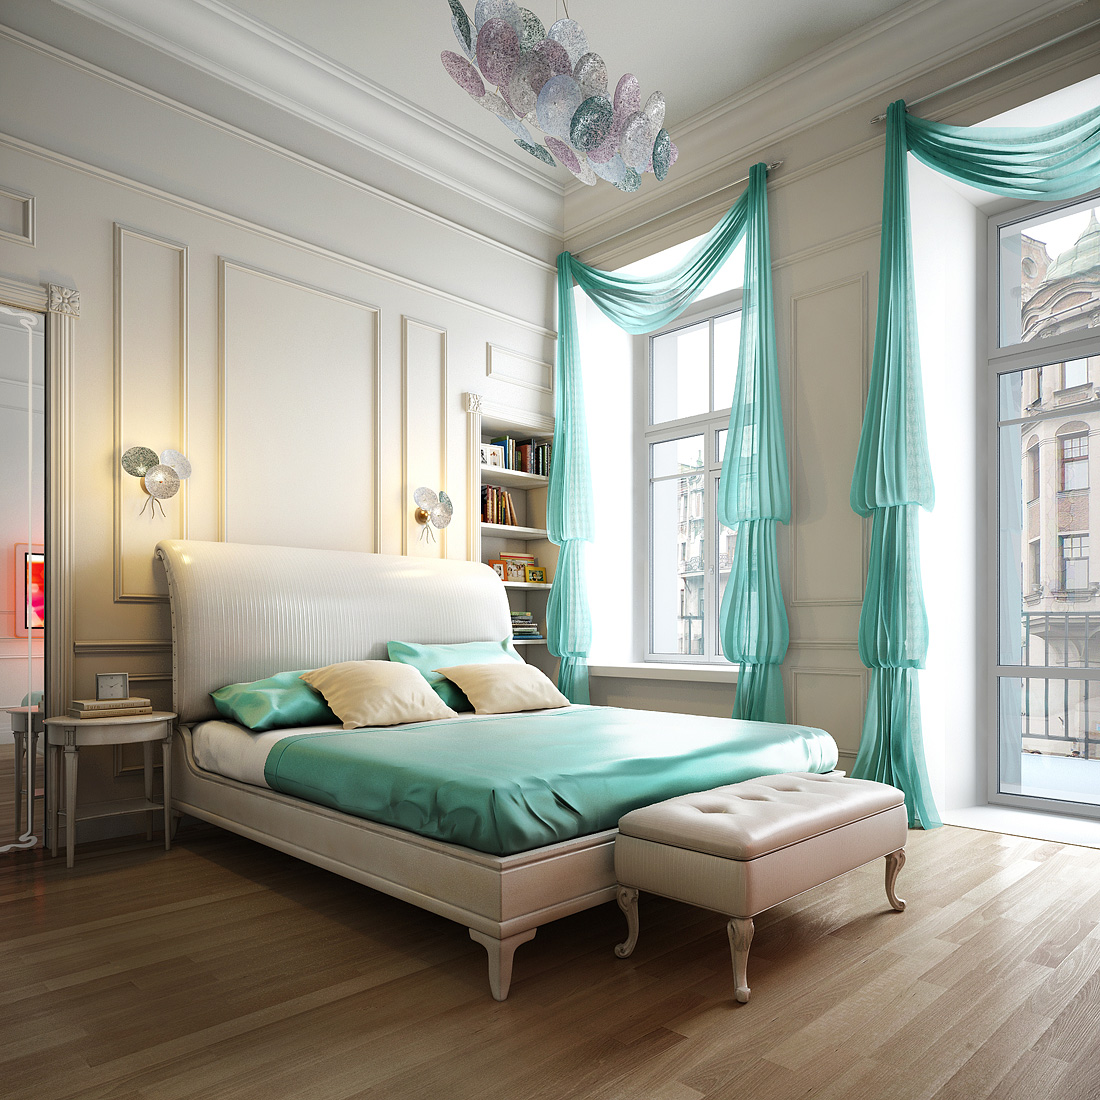 romantic-bedrom-decorated-with-spacious-curtains